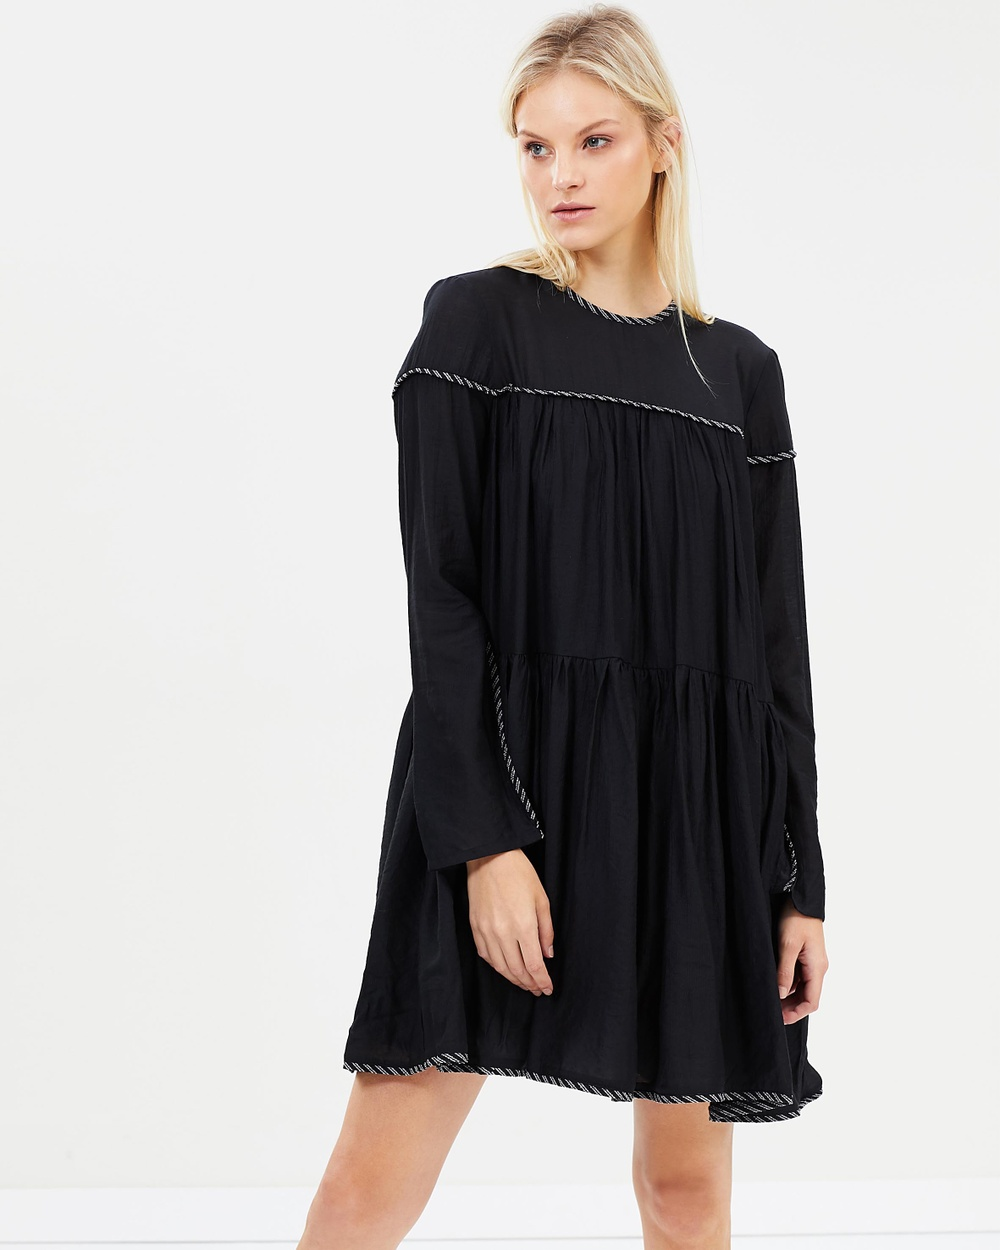 PFEIFFER The Rocket Mini Dress Dresses Black The Rocket Mini Dress